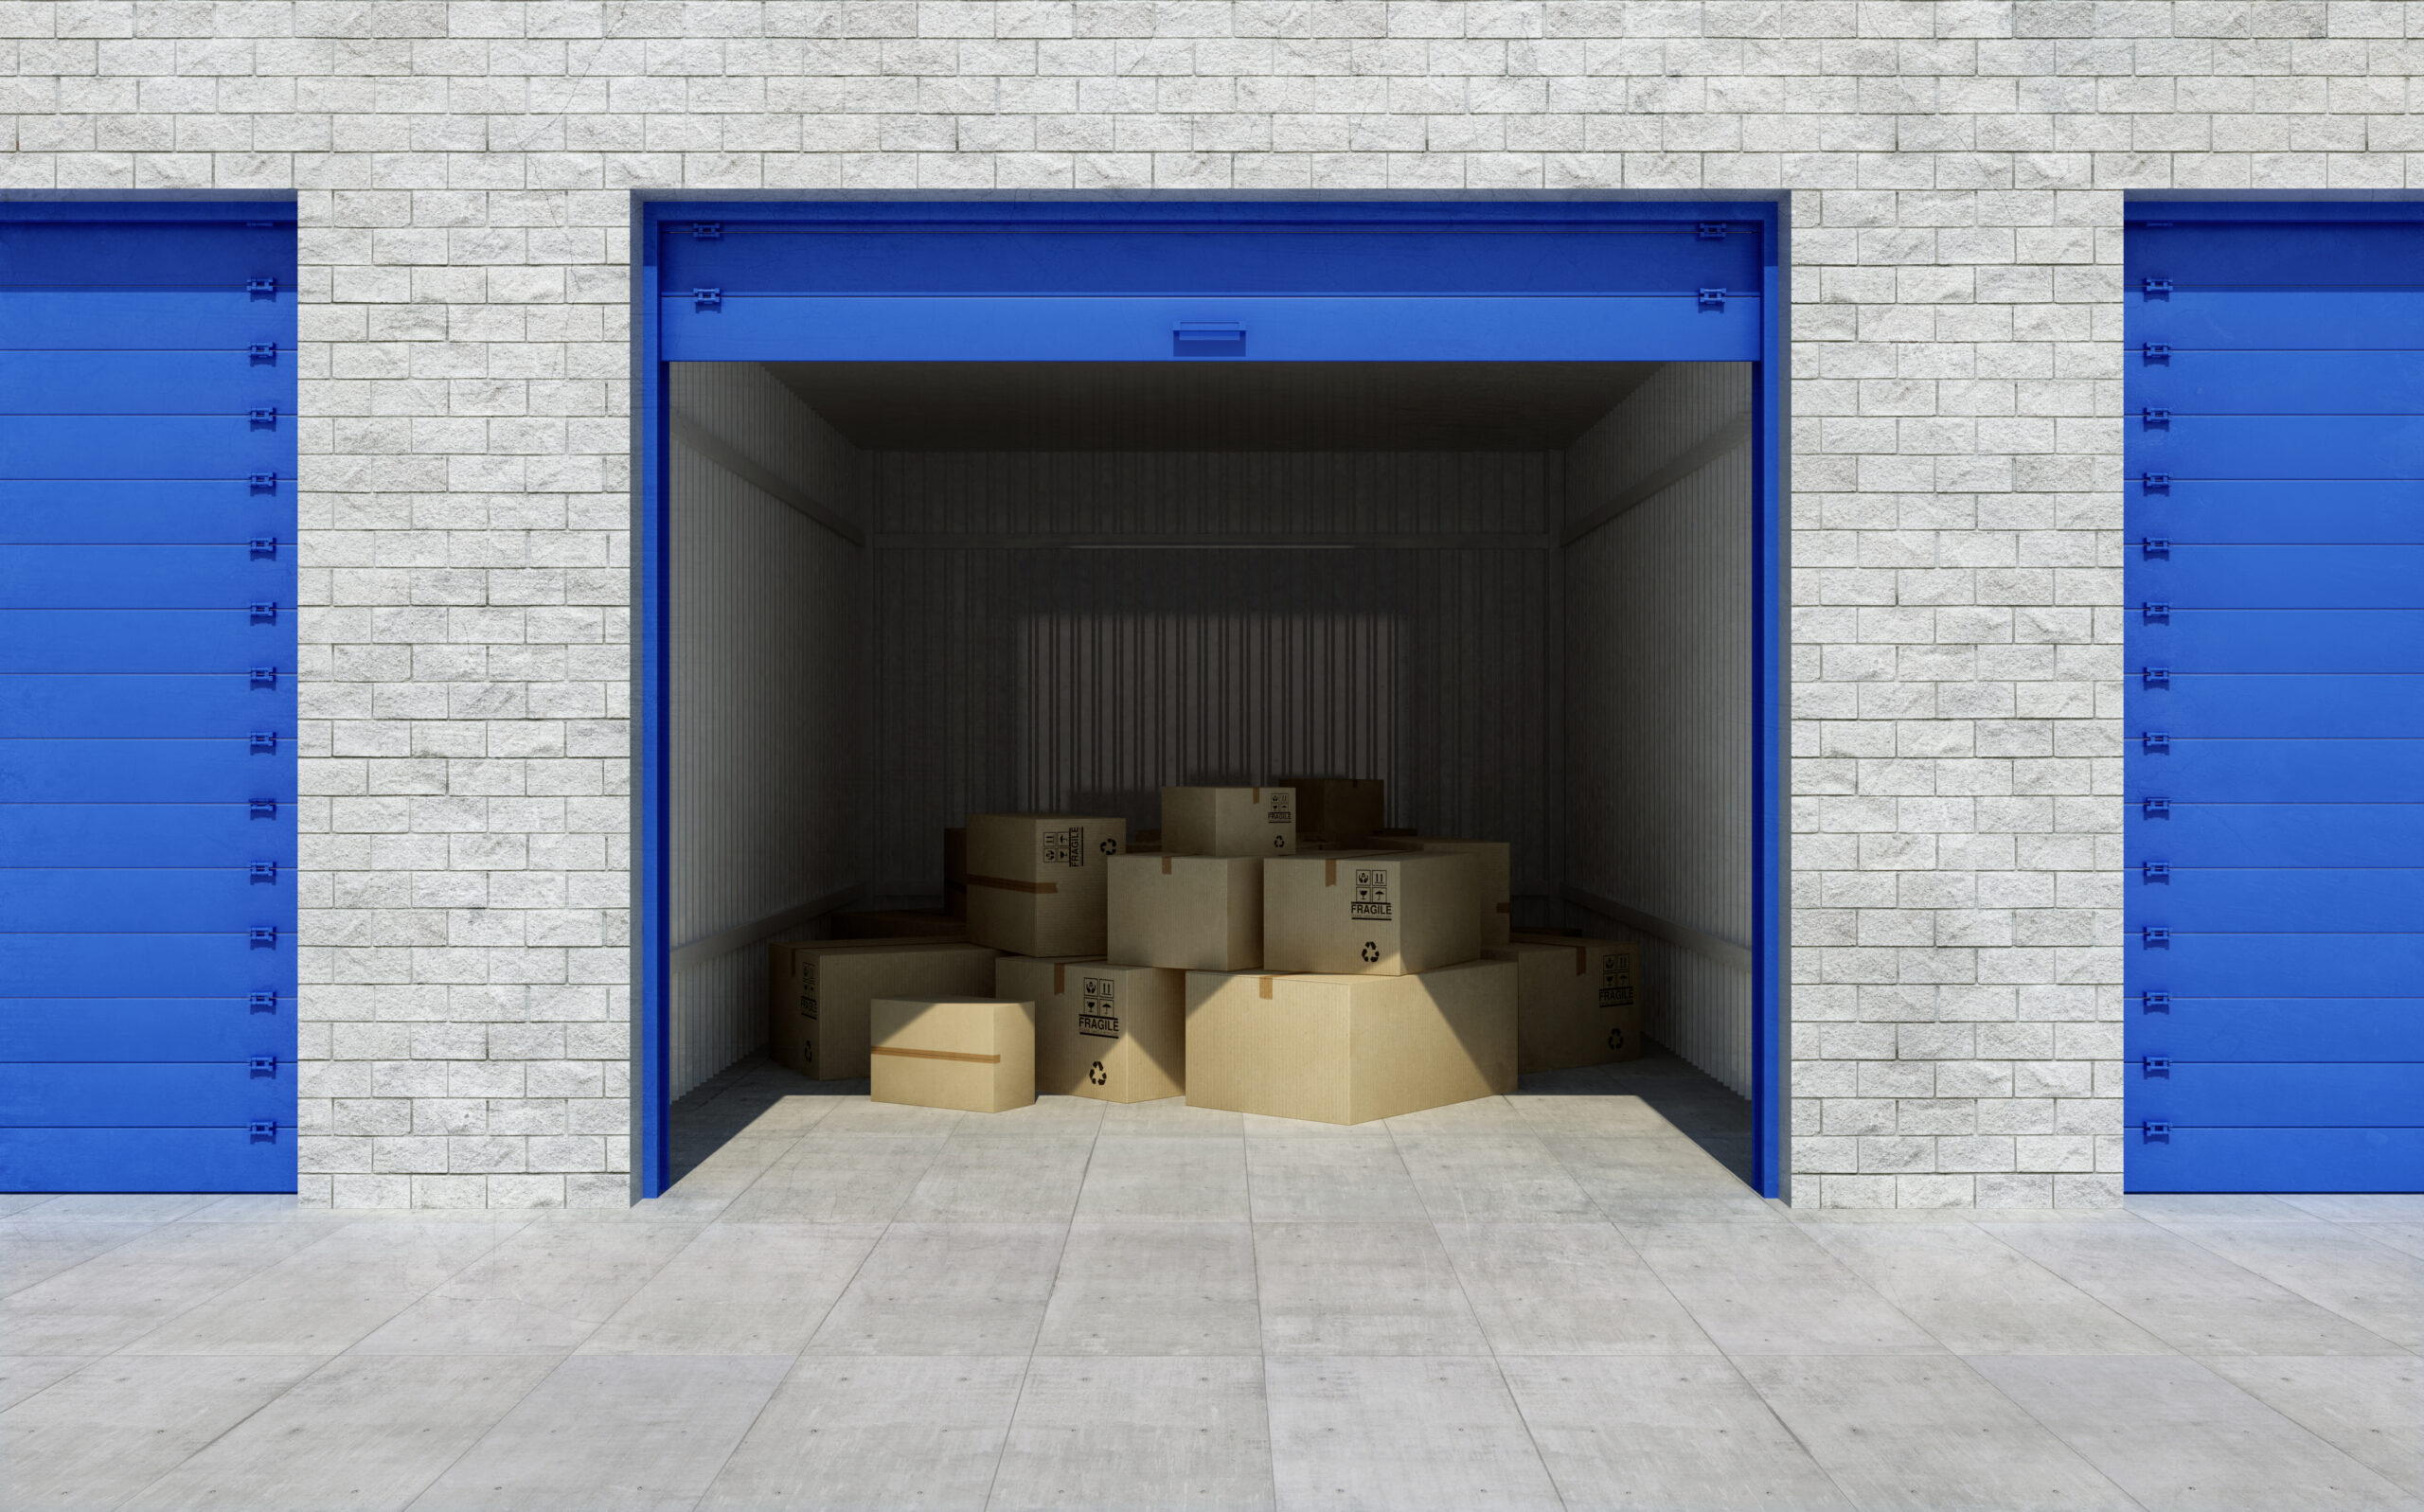 Storage unit as it would look in a storage auction